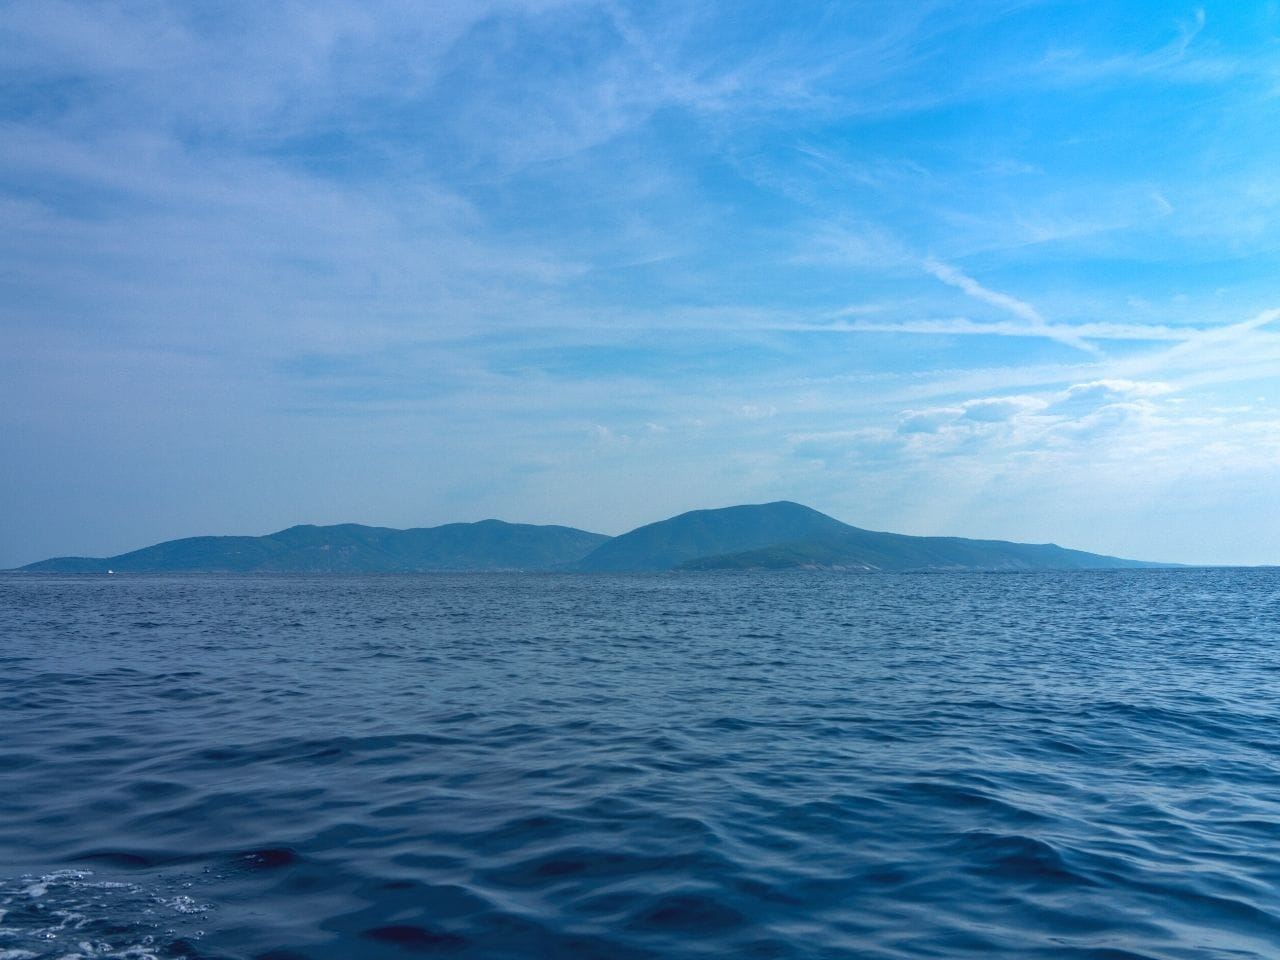 Blue skies and islands on the adriatic sea